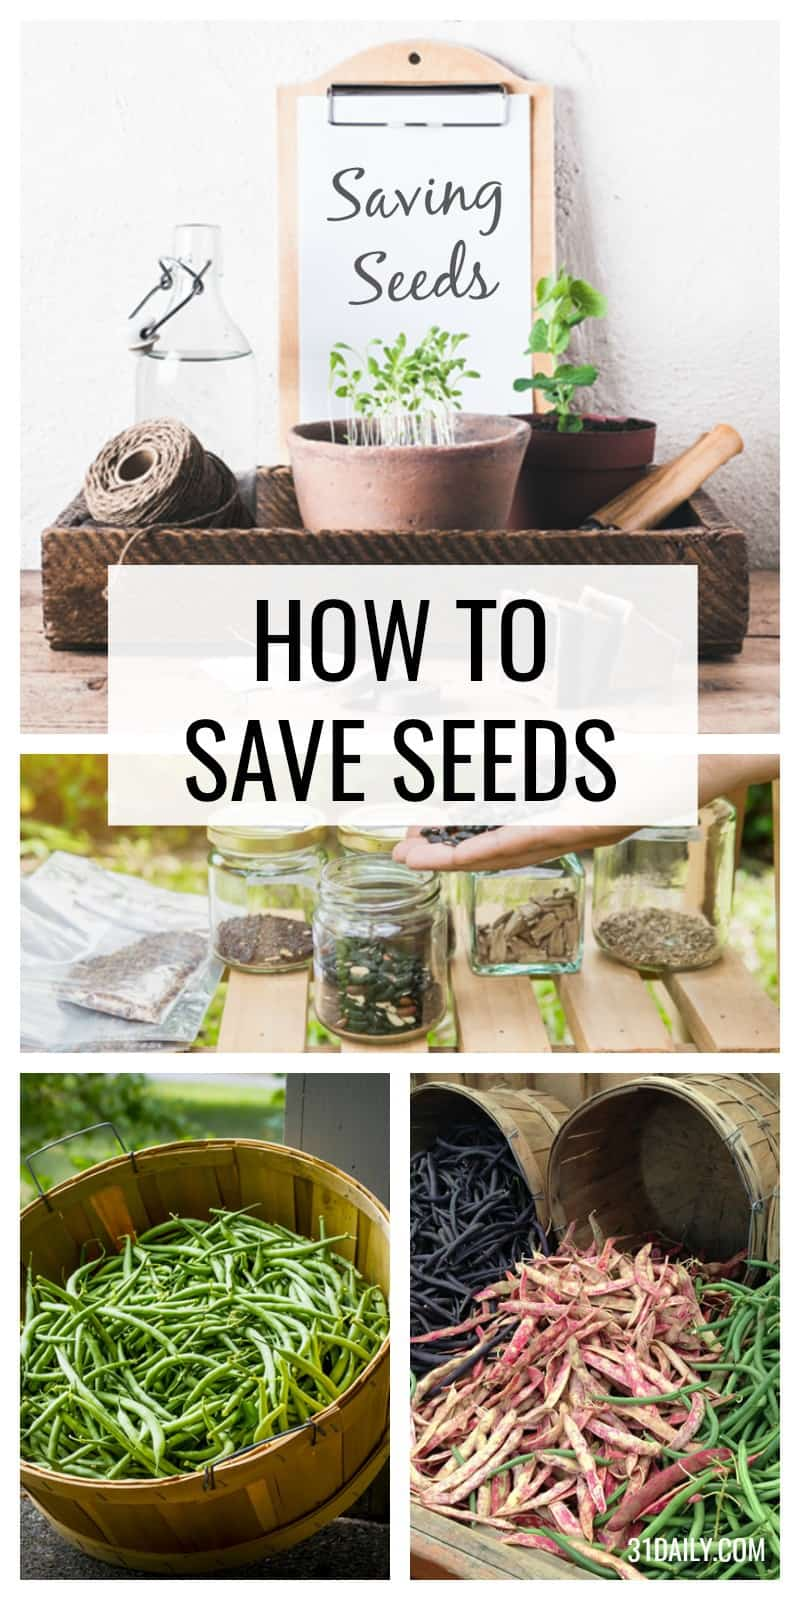 Saving Seeds from Your Garden | 31Daily.com